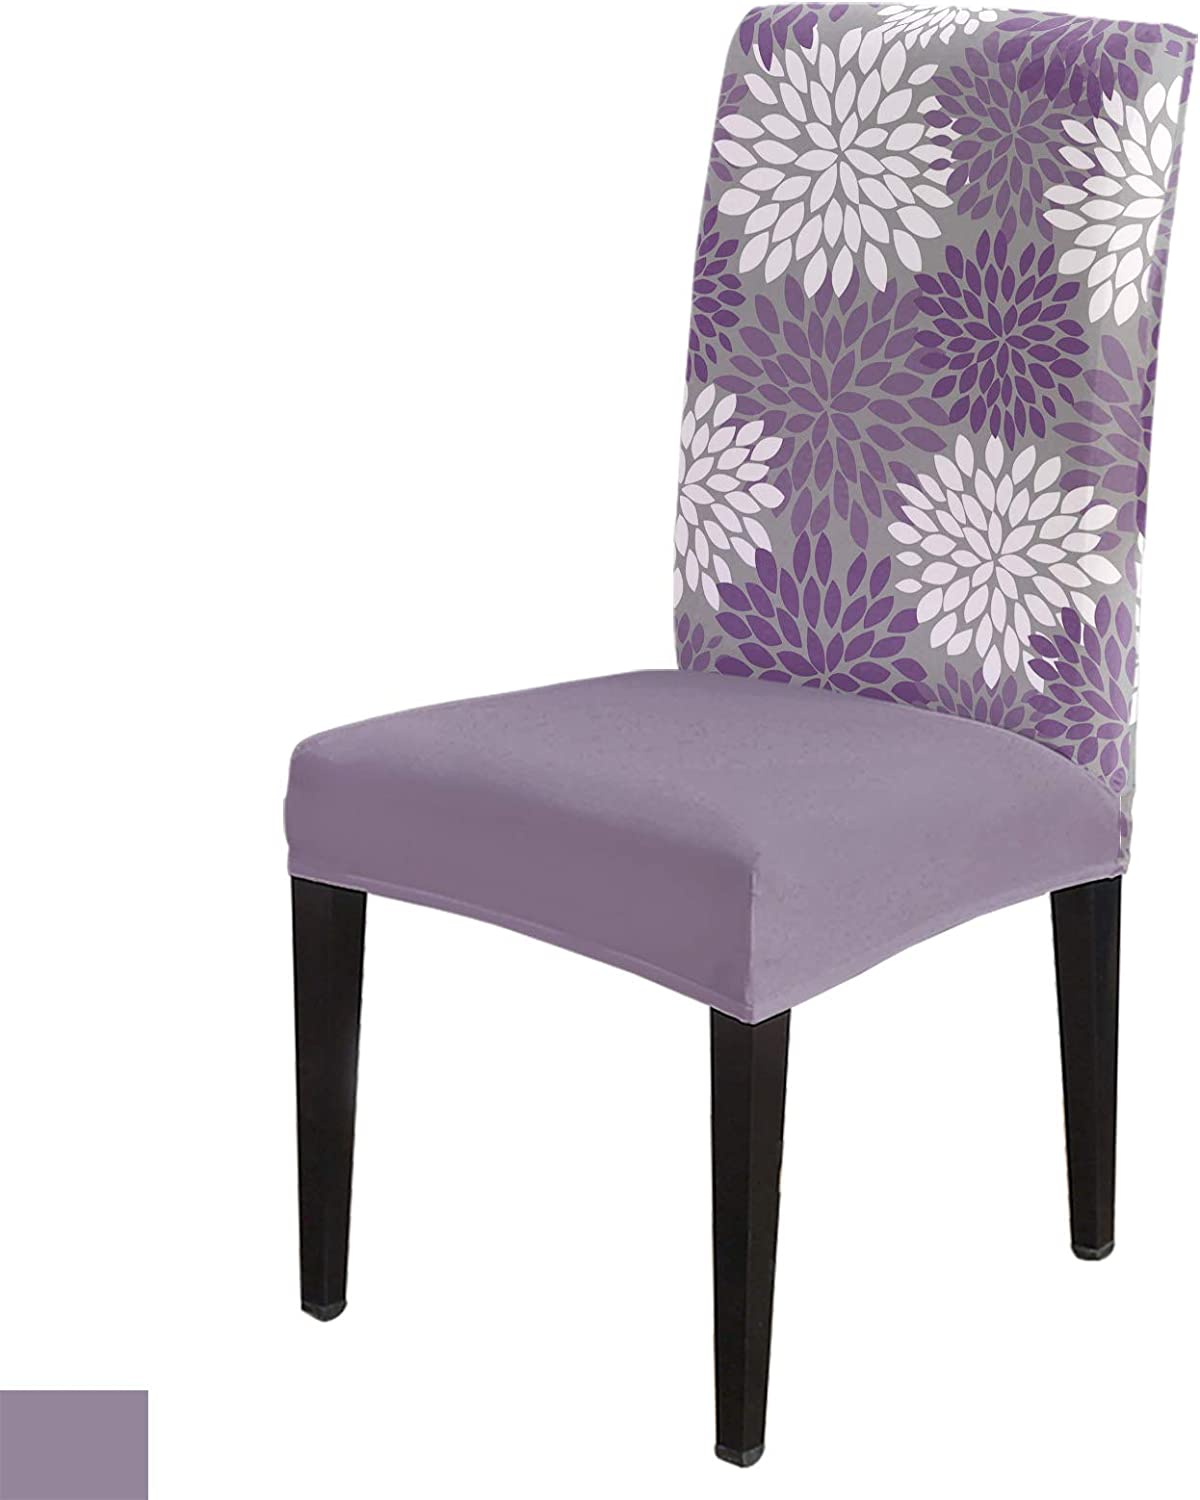 Dining Room Chair 67% OFF of fixed price Covers Sets Mesa Mall Purple White and Flower Pr Dahlia